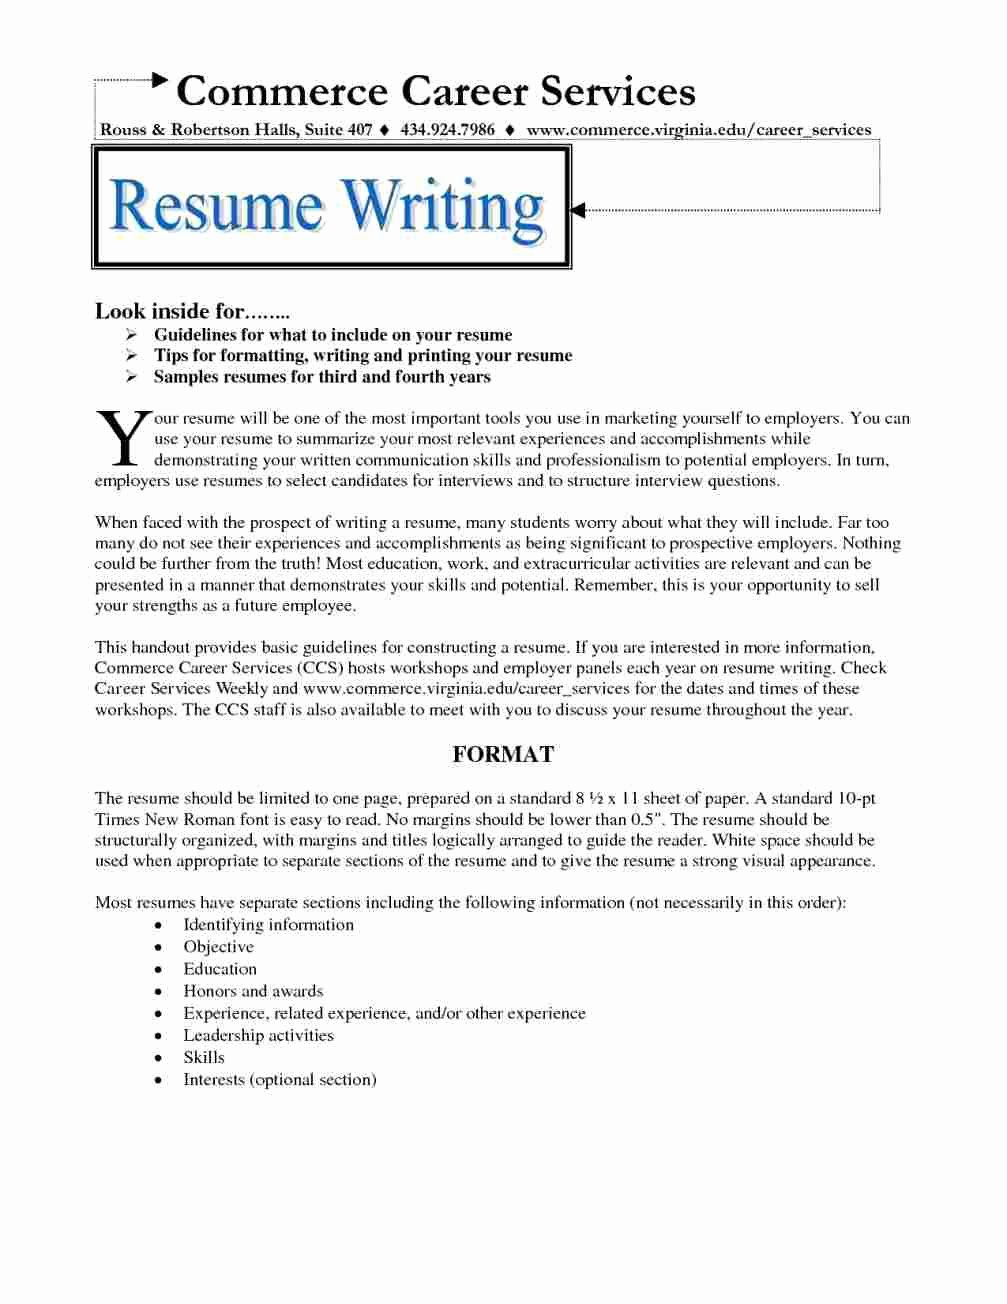 Cover Letter for Retiree Reentering the Workforce